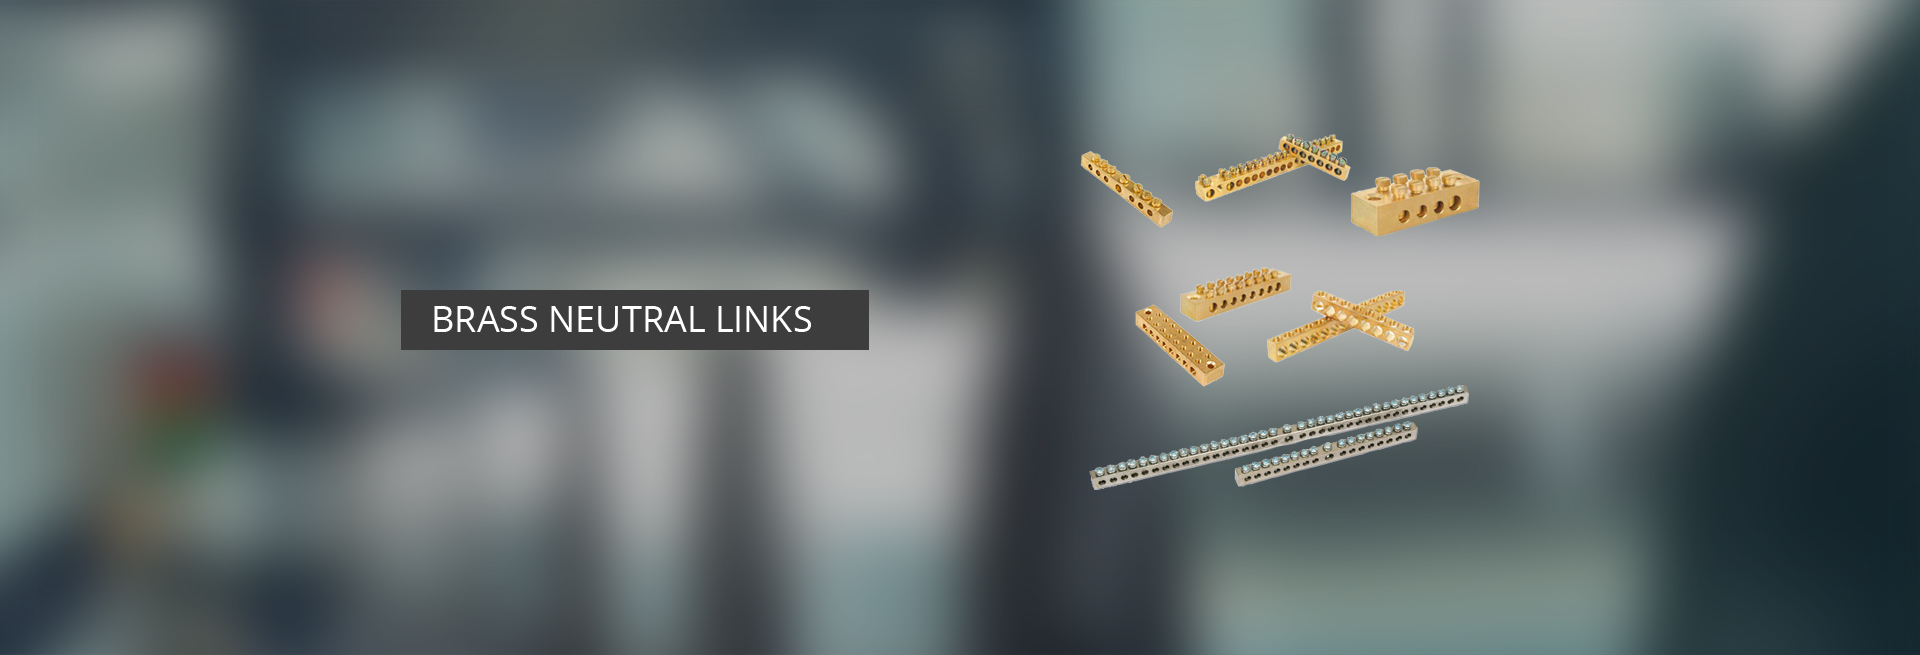 Brass Neutral Links India